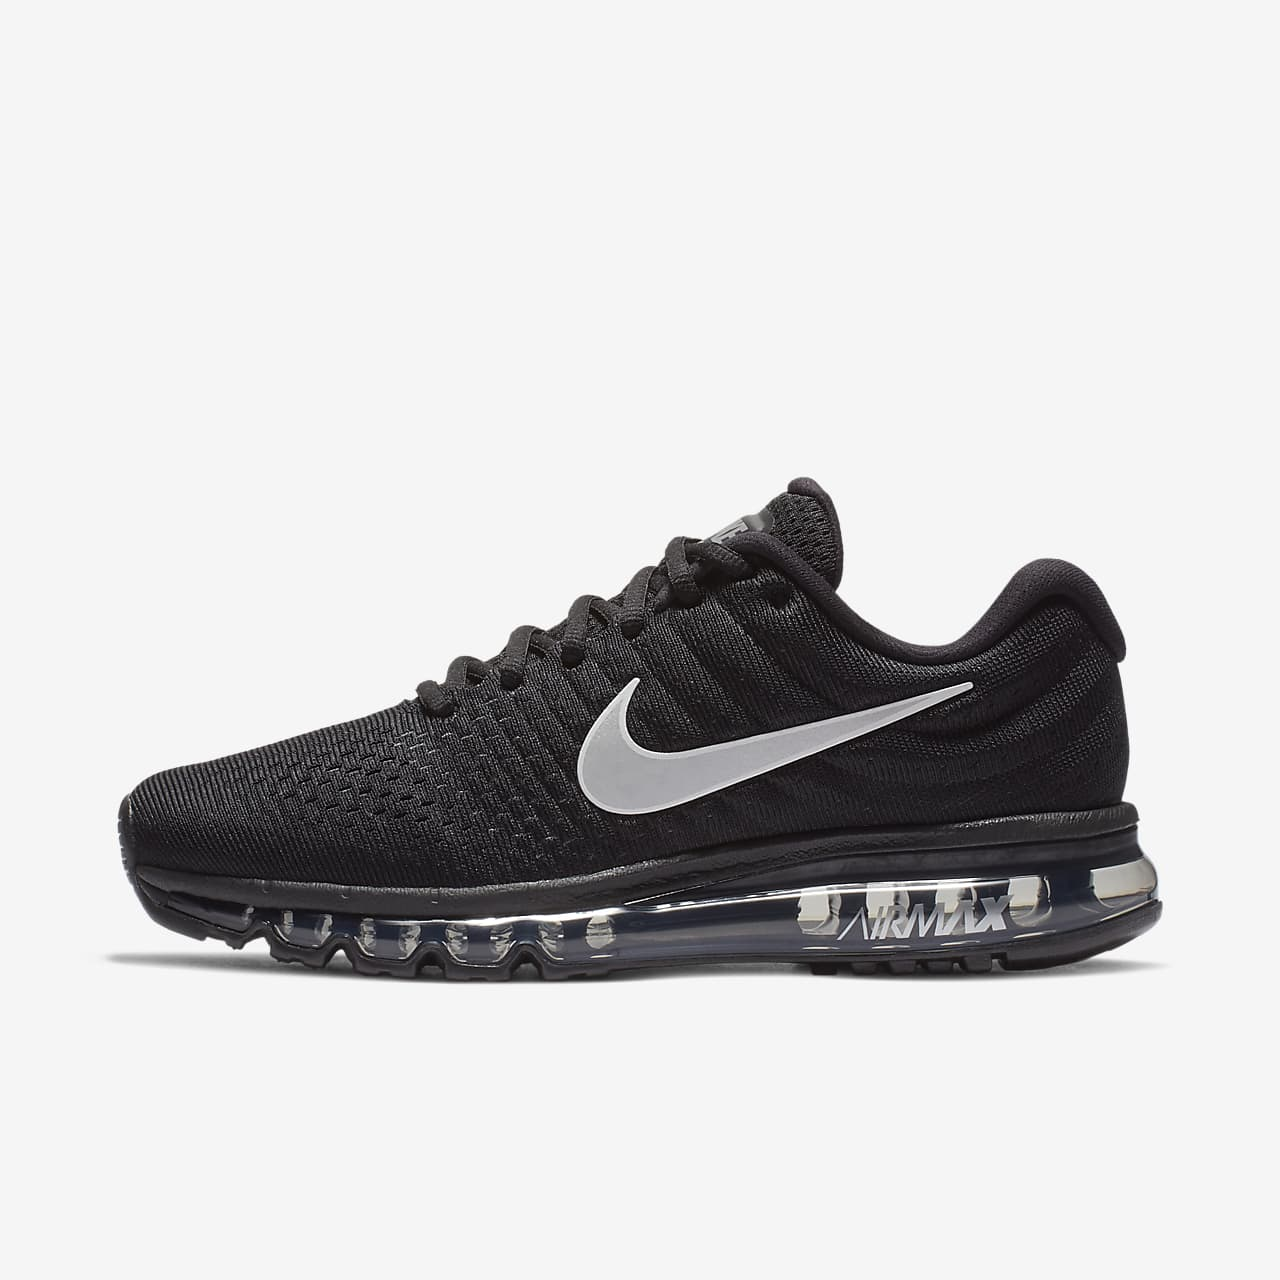 nike air max 2015 mens running shoe $190 customize it buy vip